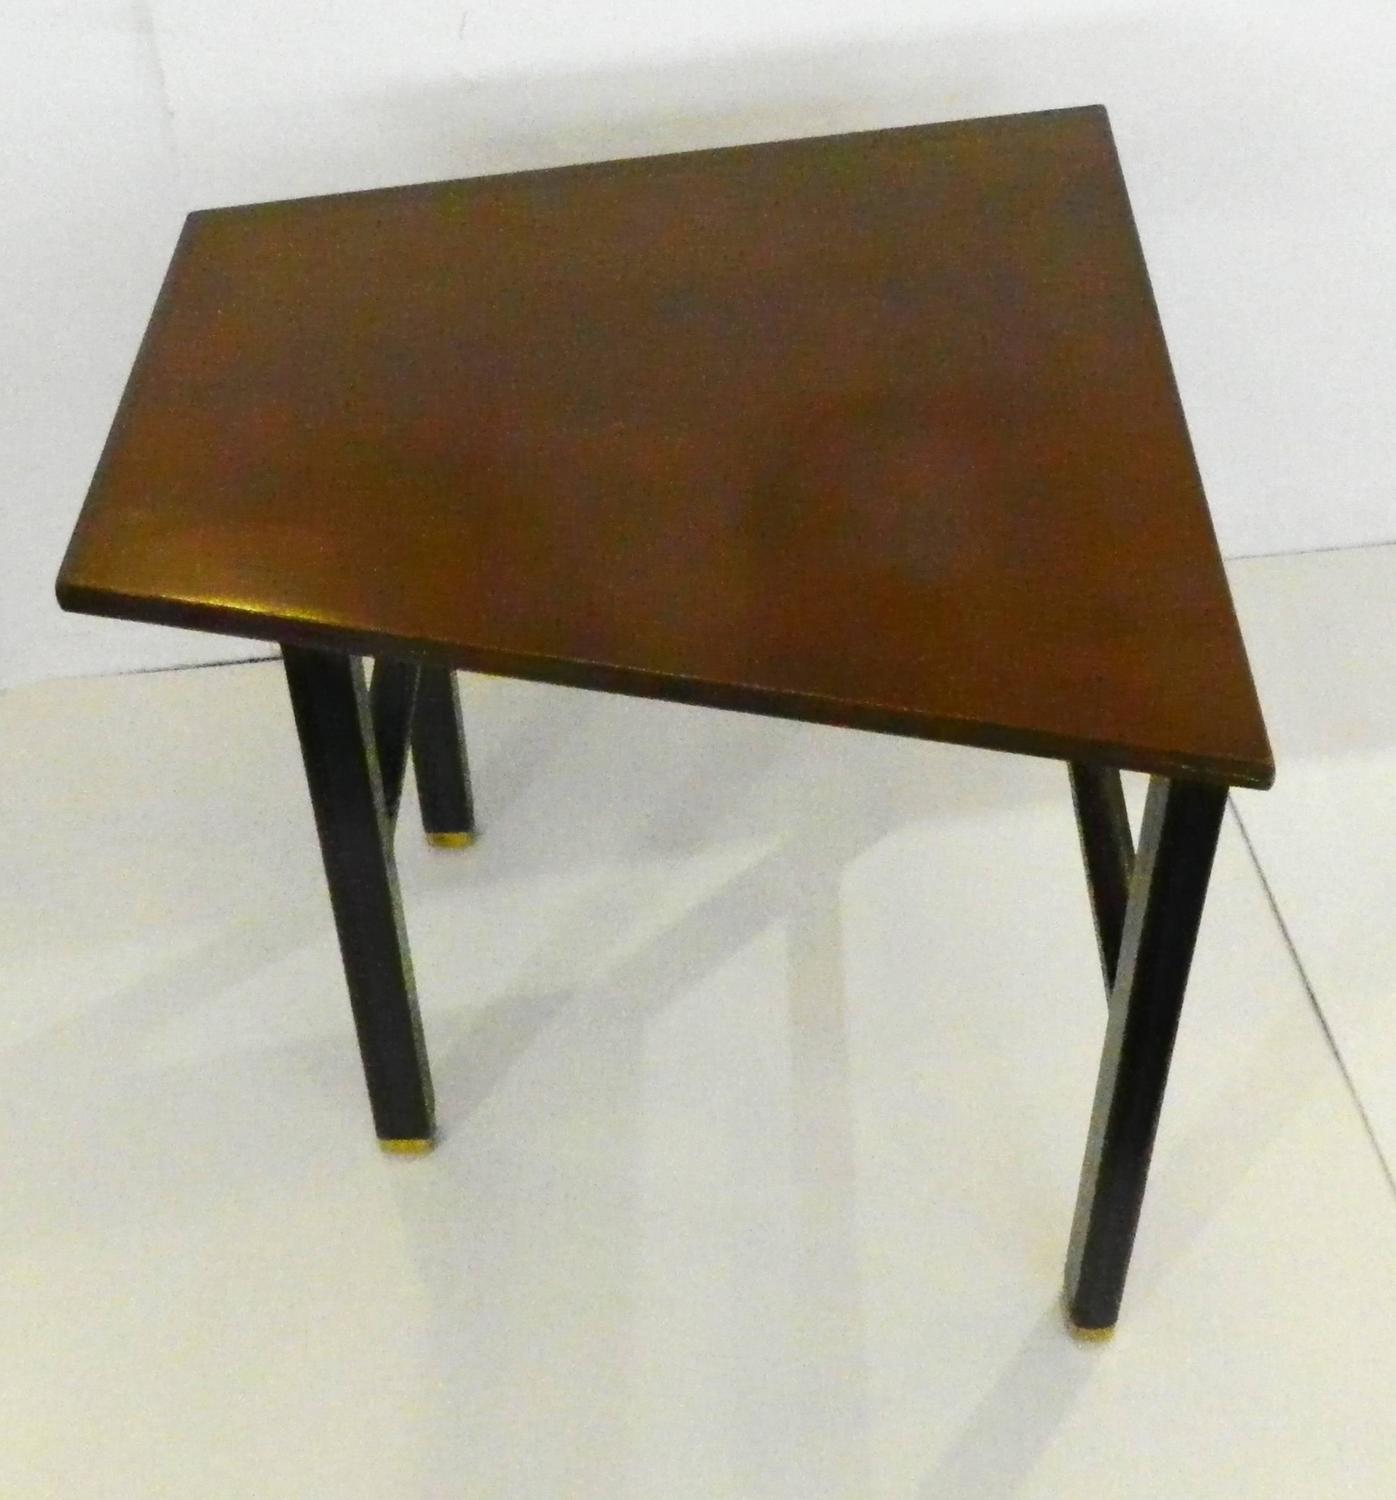 Edward Wormley For Dunbar Wedge Table For Sale At 1stdibs